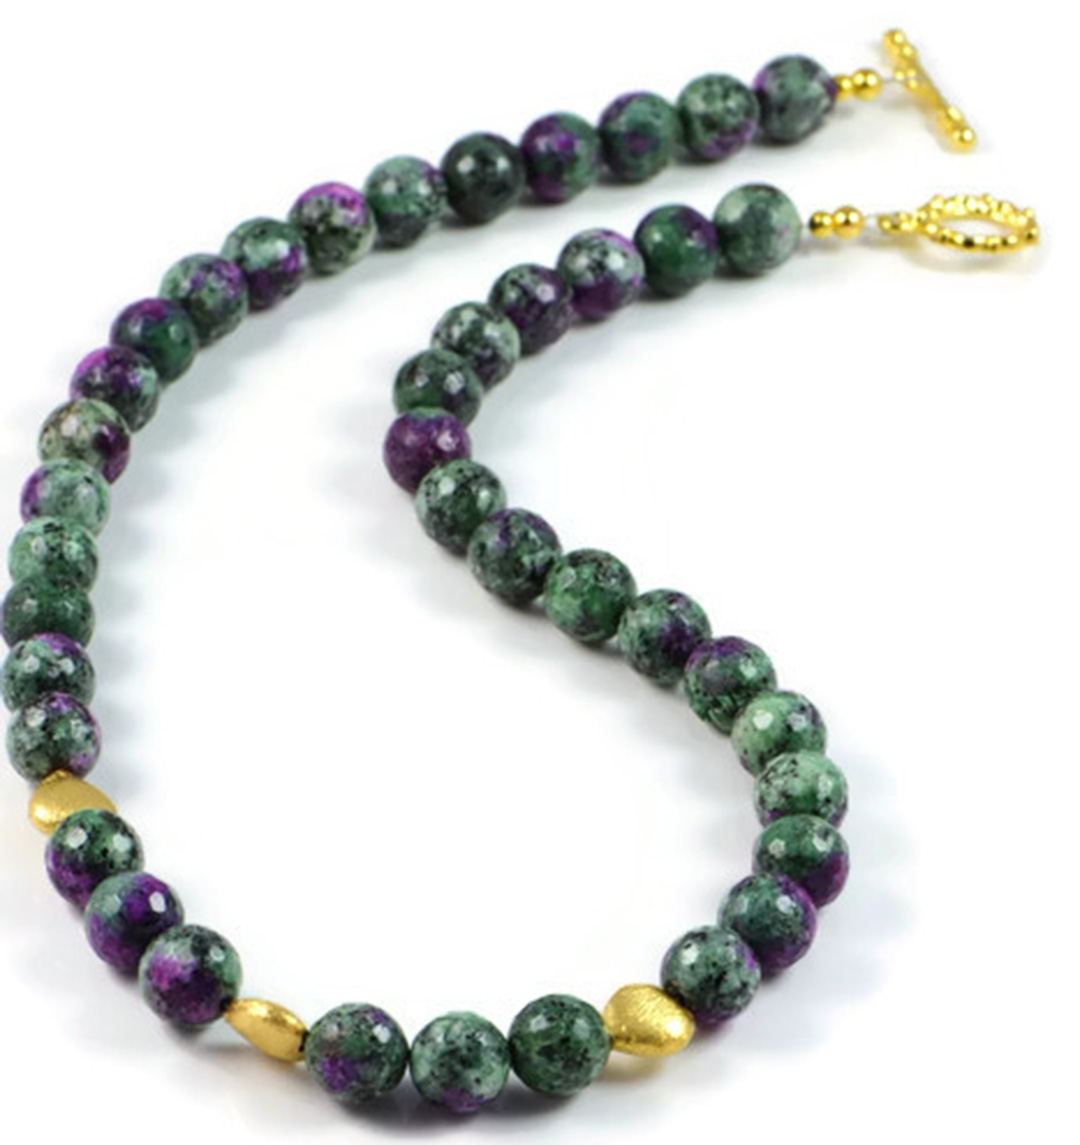 Classic Semi-Precious Gemstone 10mm Ruby Zoisite Faceted Round Beads 19 inch Luxury Handmade Women's Necklace